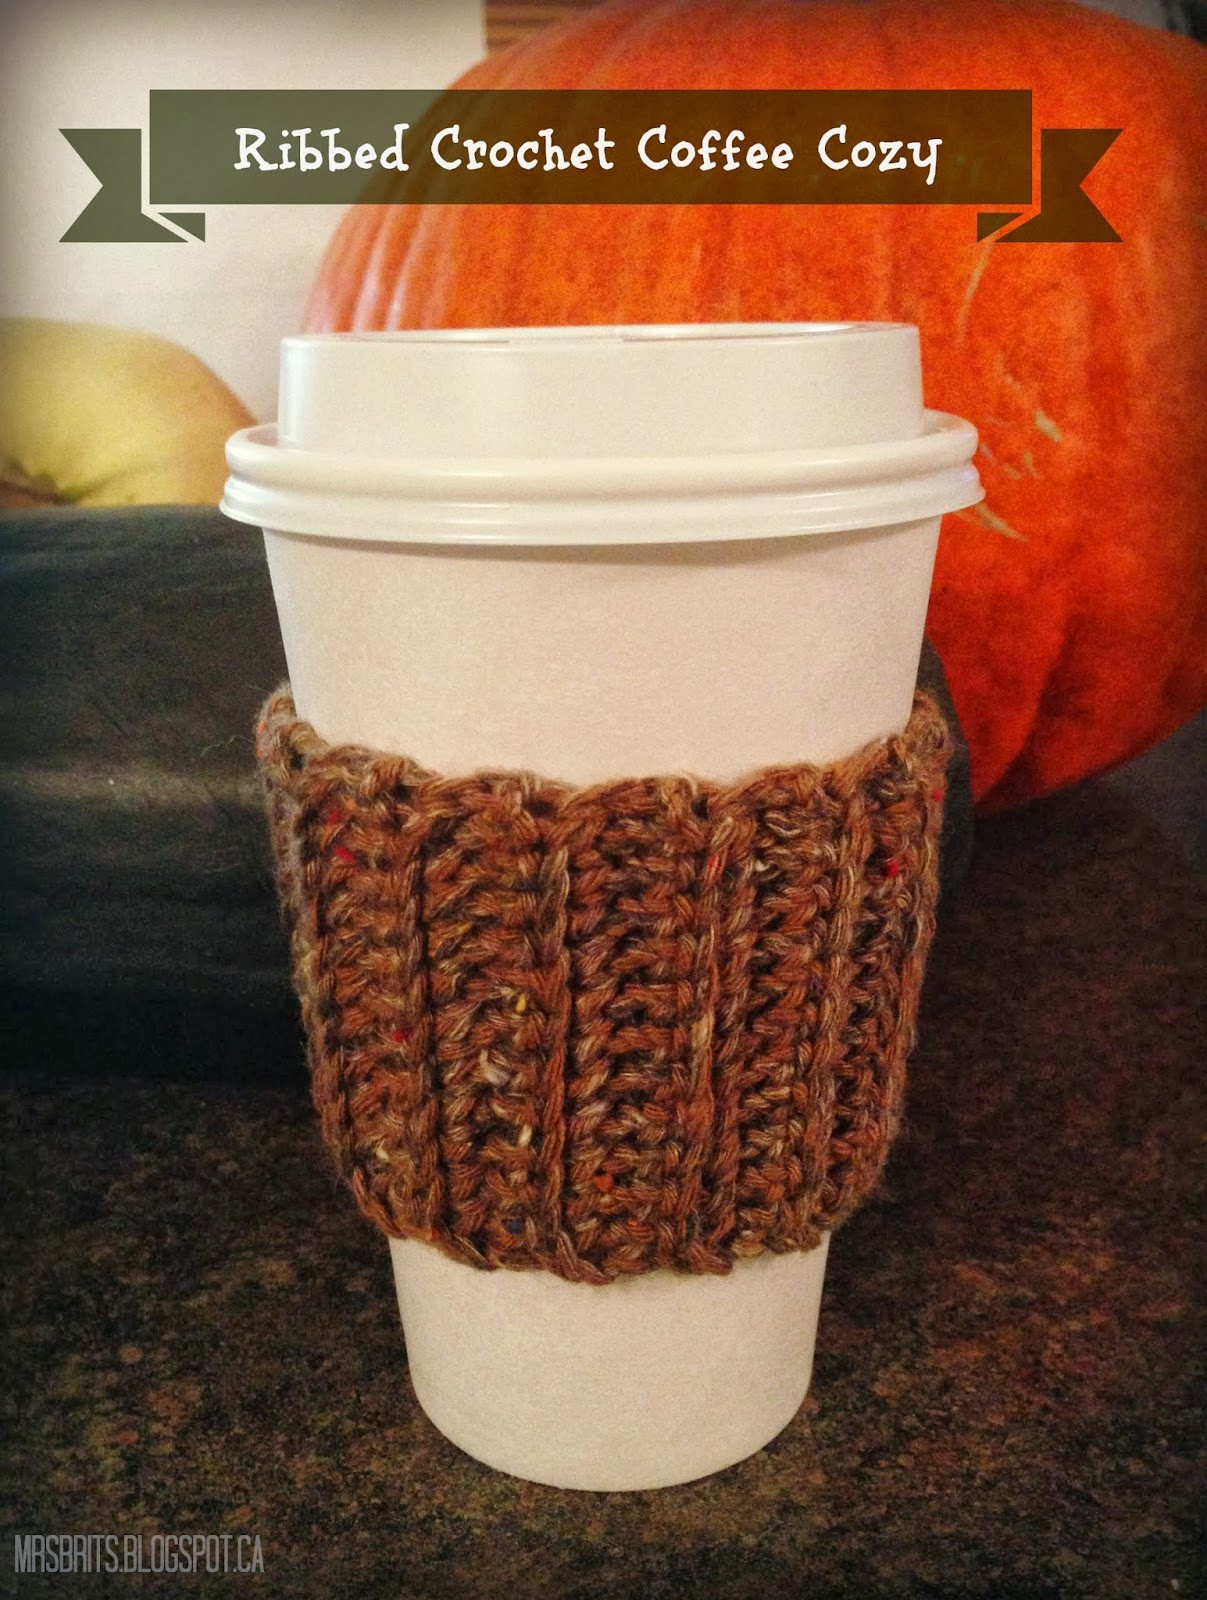 Crochet Coffee Cup Cozy Unique Mrsbrits Ribbed Coffee Cozy Crochet Pattern Of Crochet Coffee Cup Cozy Elegant Basketweave Cup Cozy Crochet Pattern with